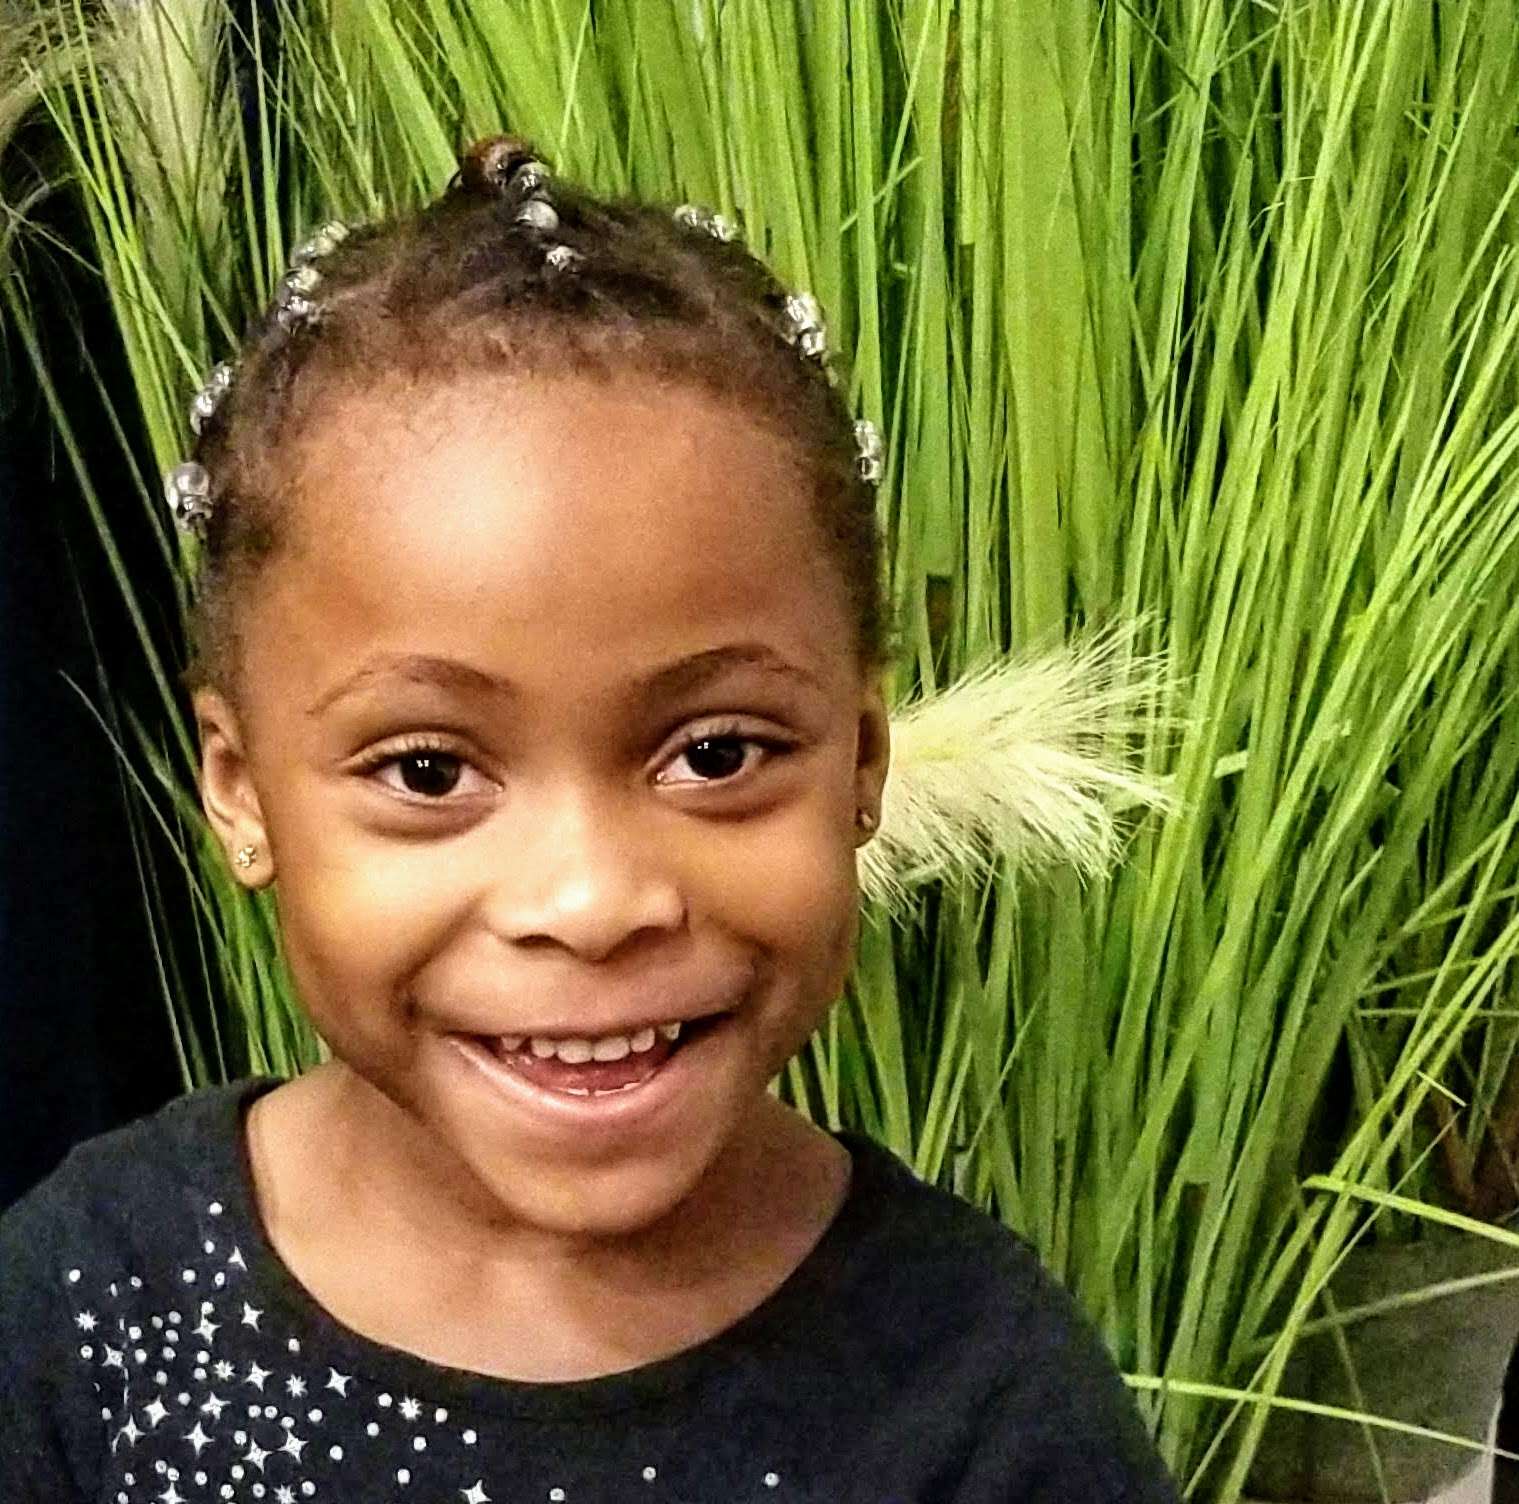 JAMILLIA TEASLEY - 5yr old actress and dancer